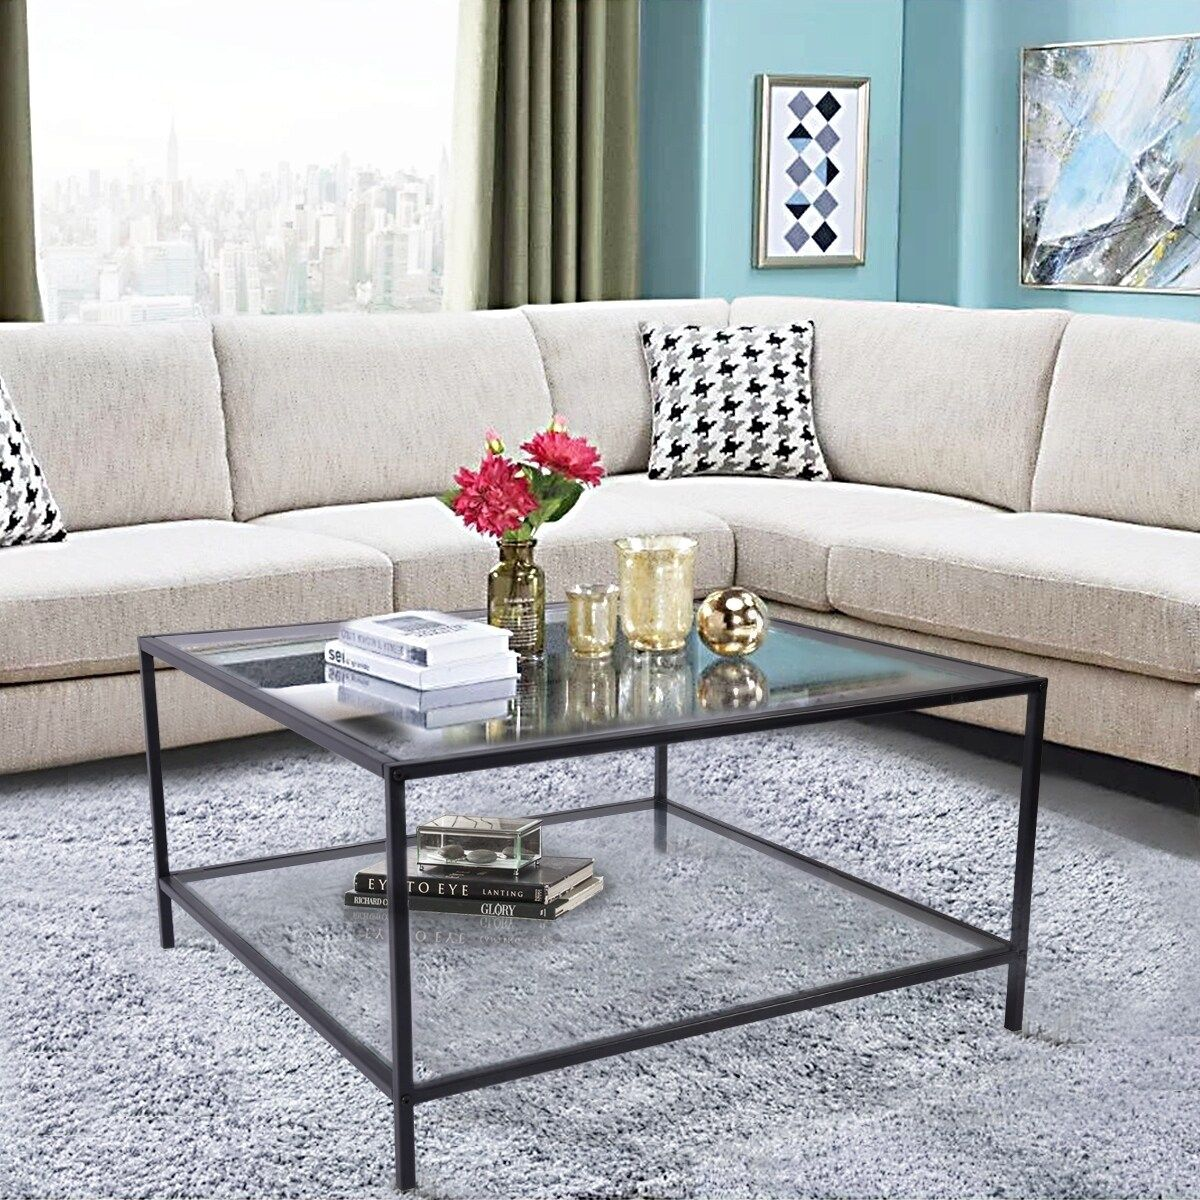 Furniture r square glass table top coffee table clear in